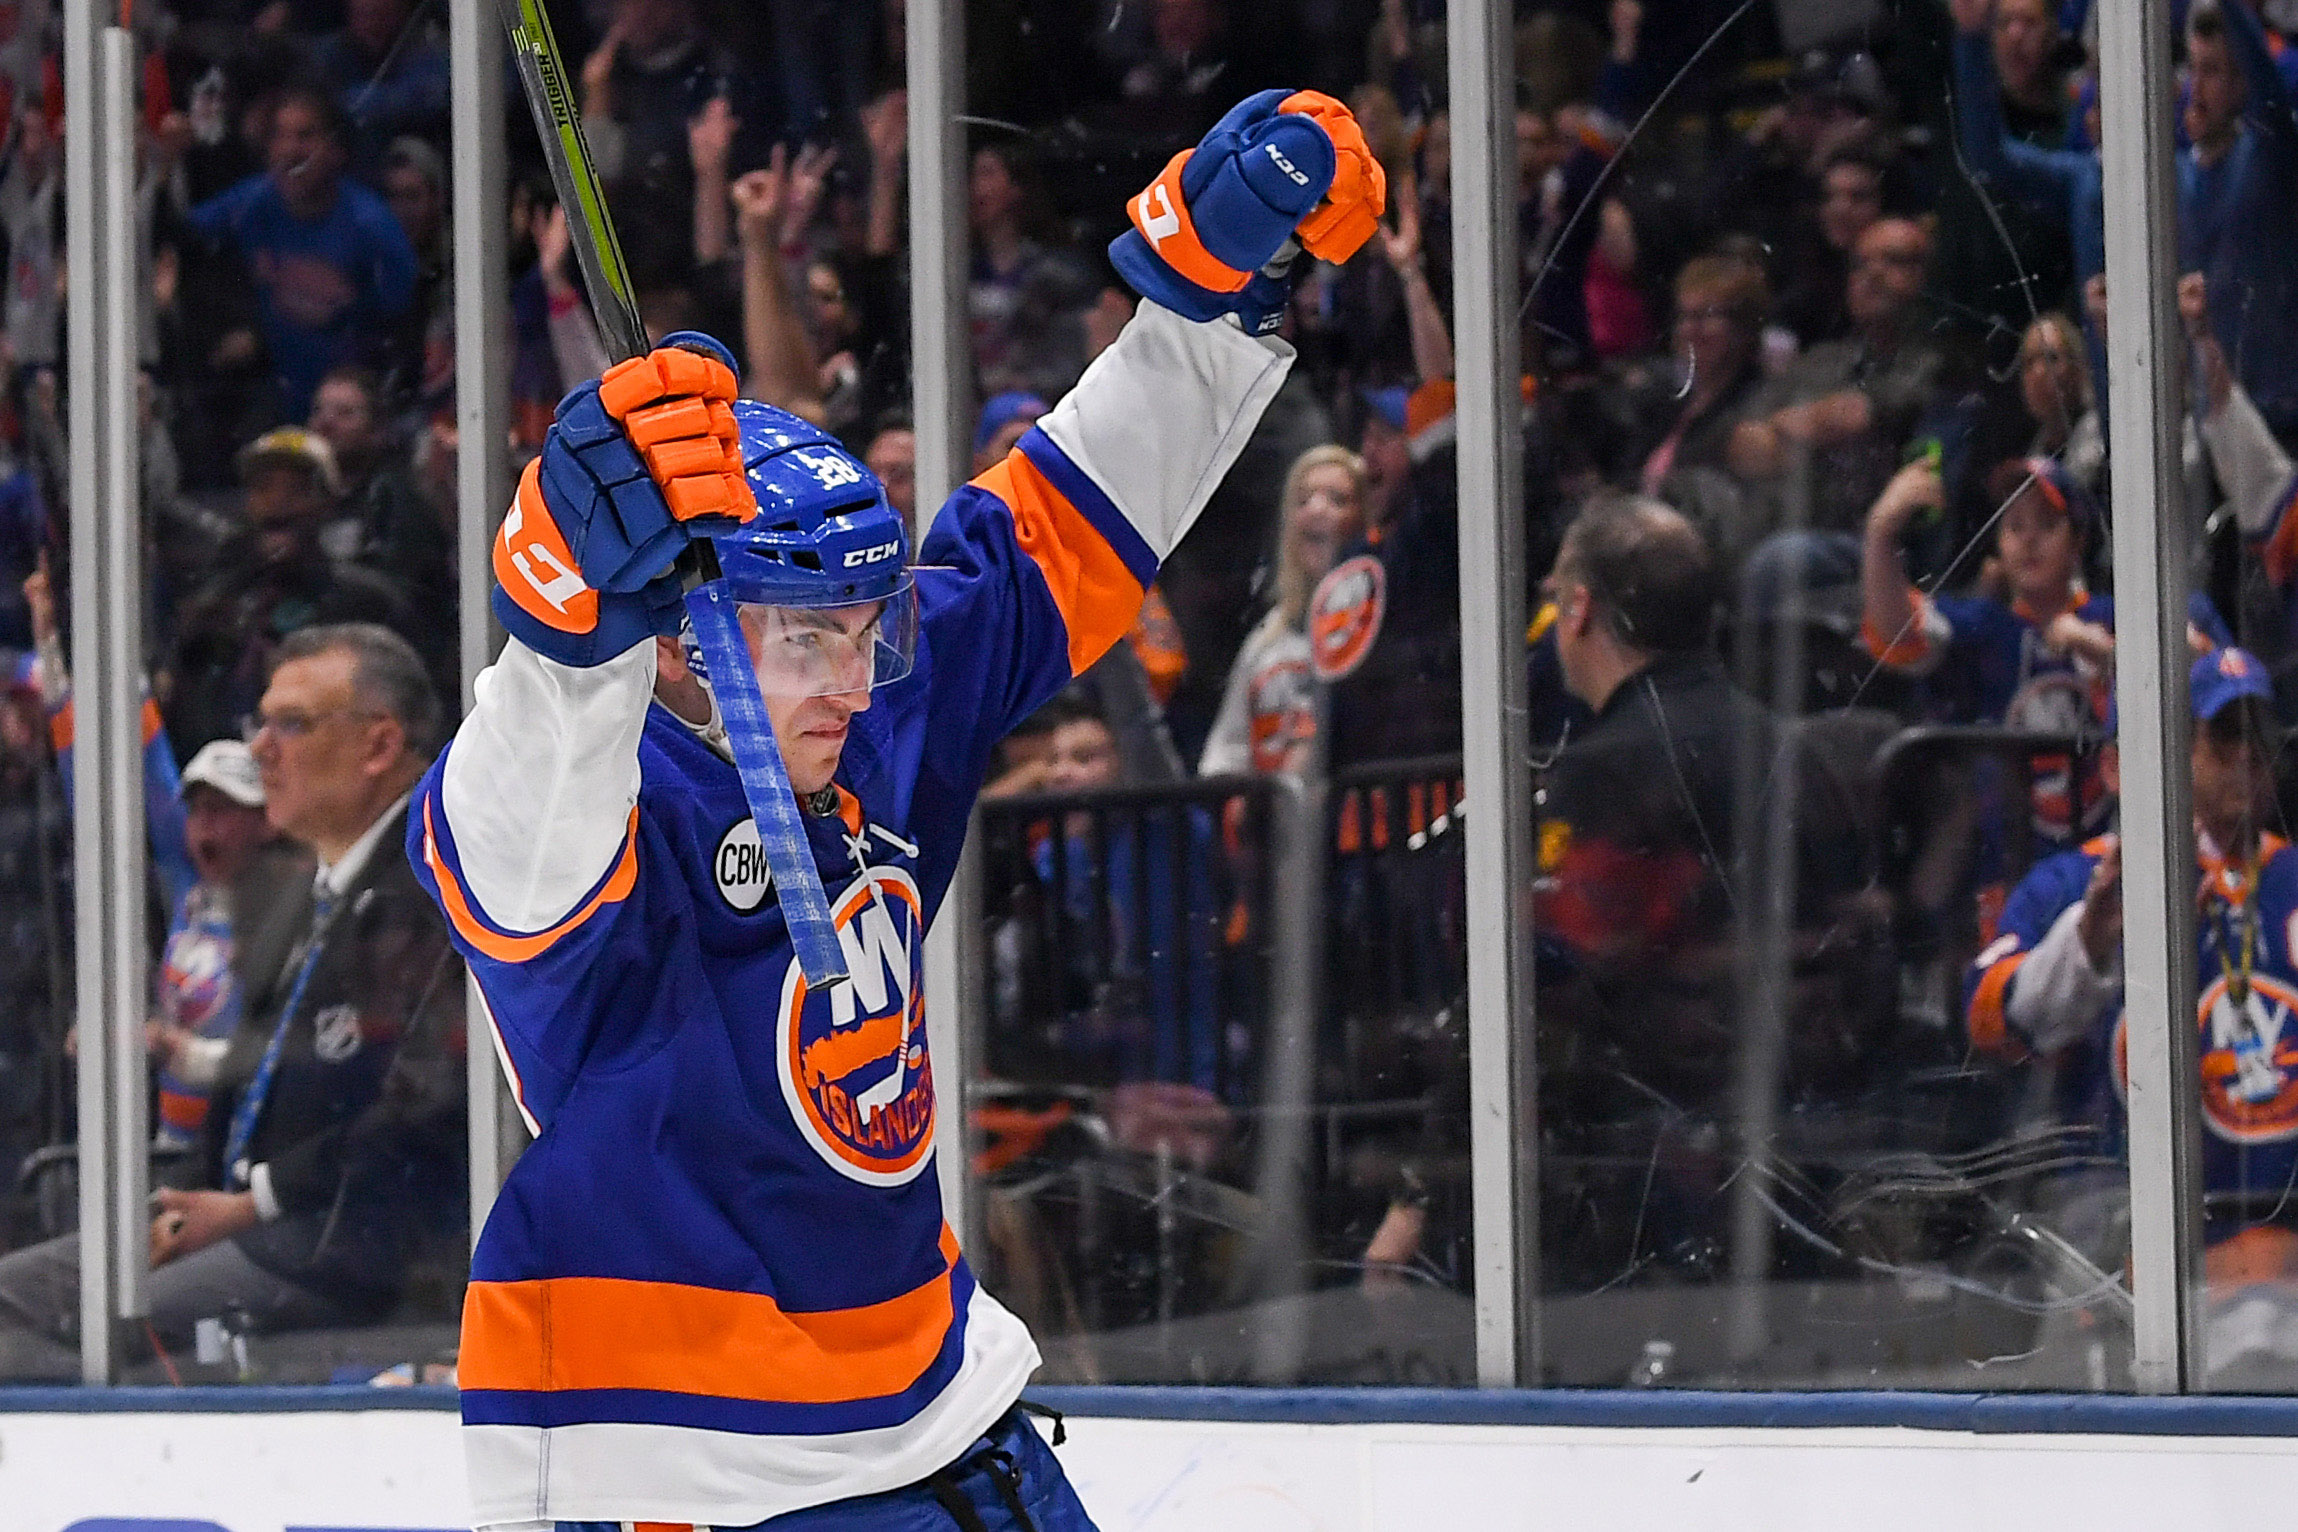 Mar 30, 2019; Uniondale, NY, USA; New York Islanders left wing Michael Dal Colle (28) celebrates his goal against the Buffalo Sabres during the second period at Nassau Veterans Memorial Coliseum. Mandatory Credit: Dennis Schneidler-USA TODAY Sports